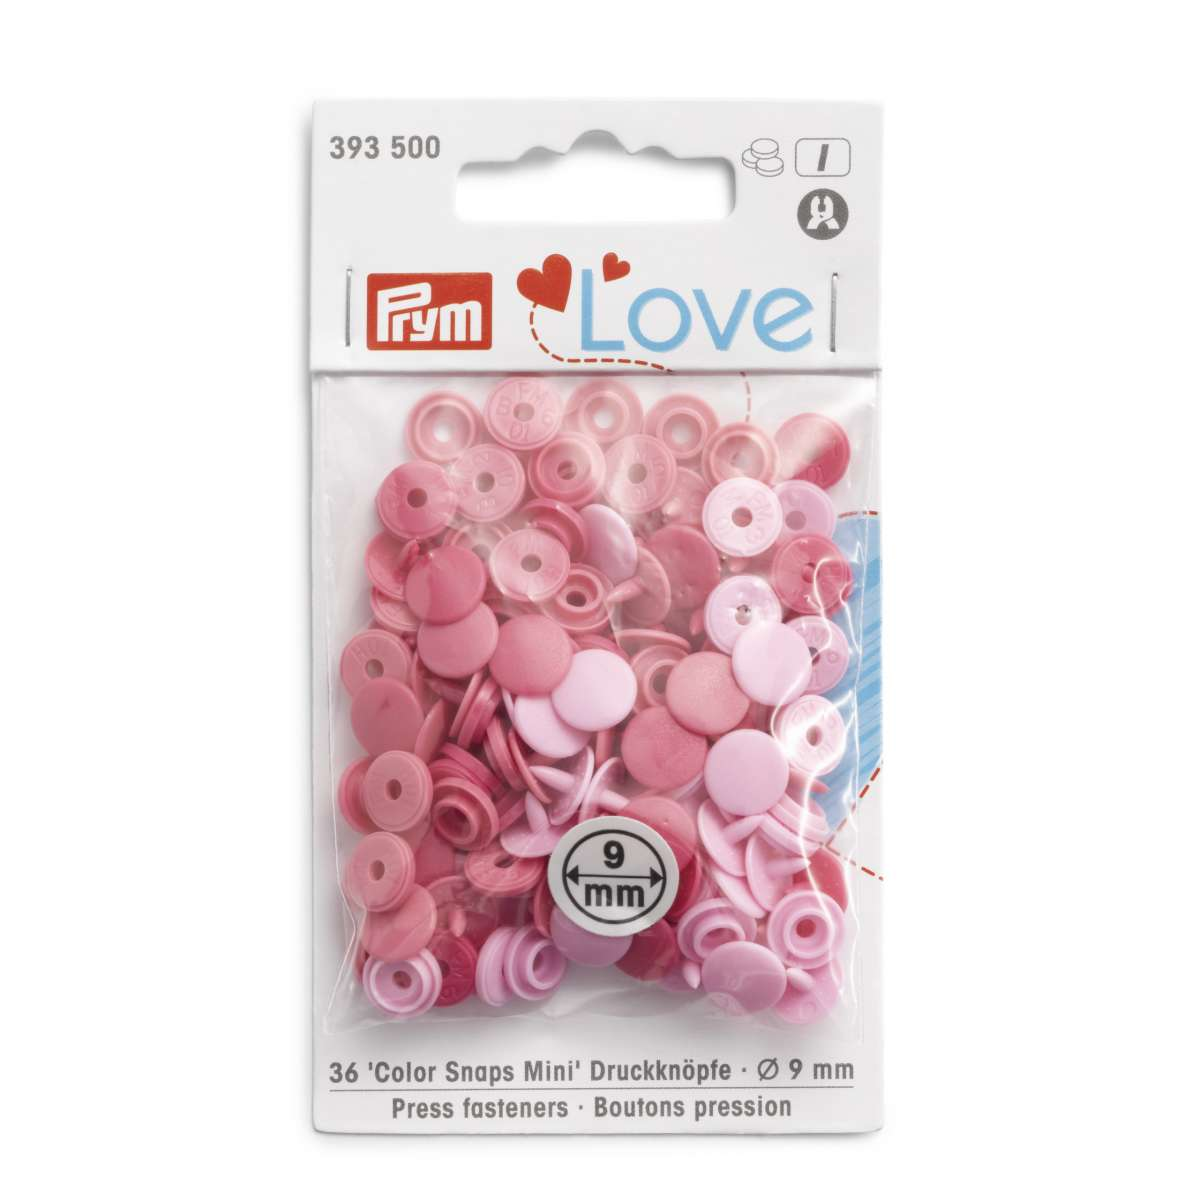 Prym Love Press fasteners Colour Snaps Mini, 9 mm, in shades of pink